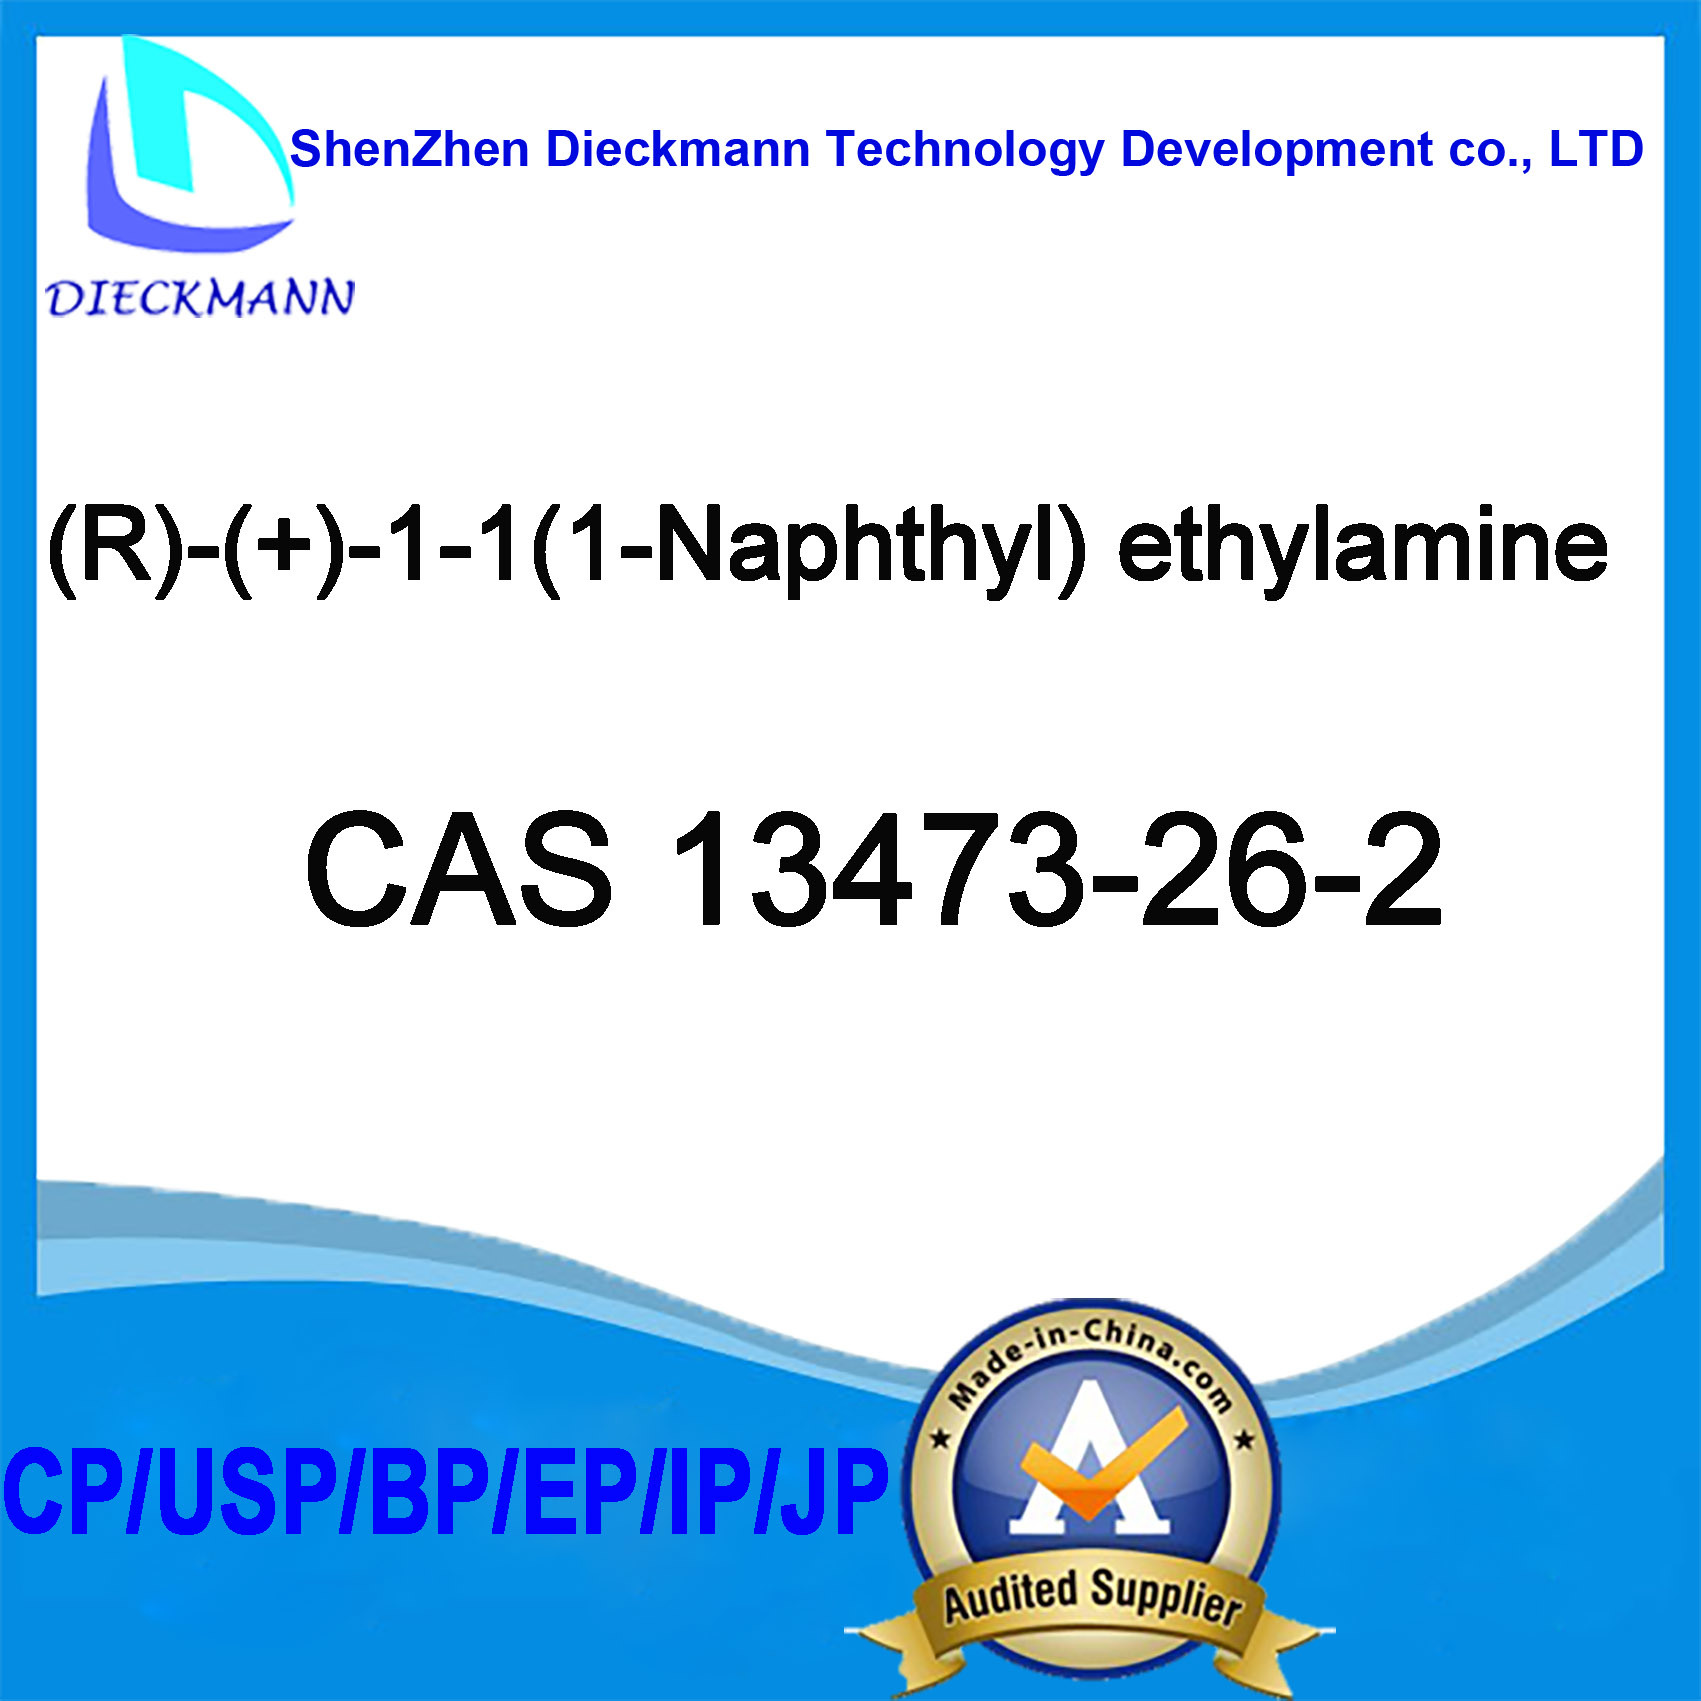 (R)-(+)-1-1(1-Naphthyl) ethylamine CAS 13473-26-2